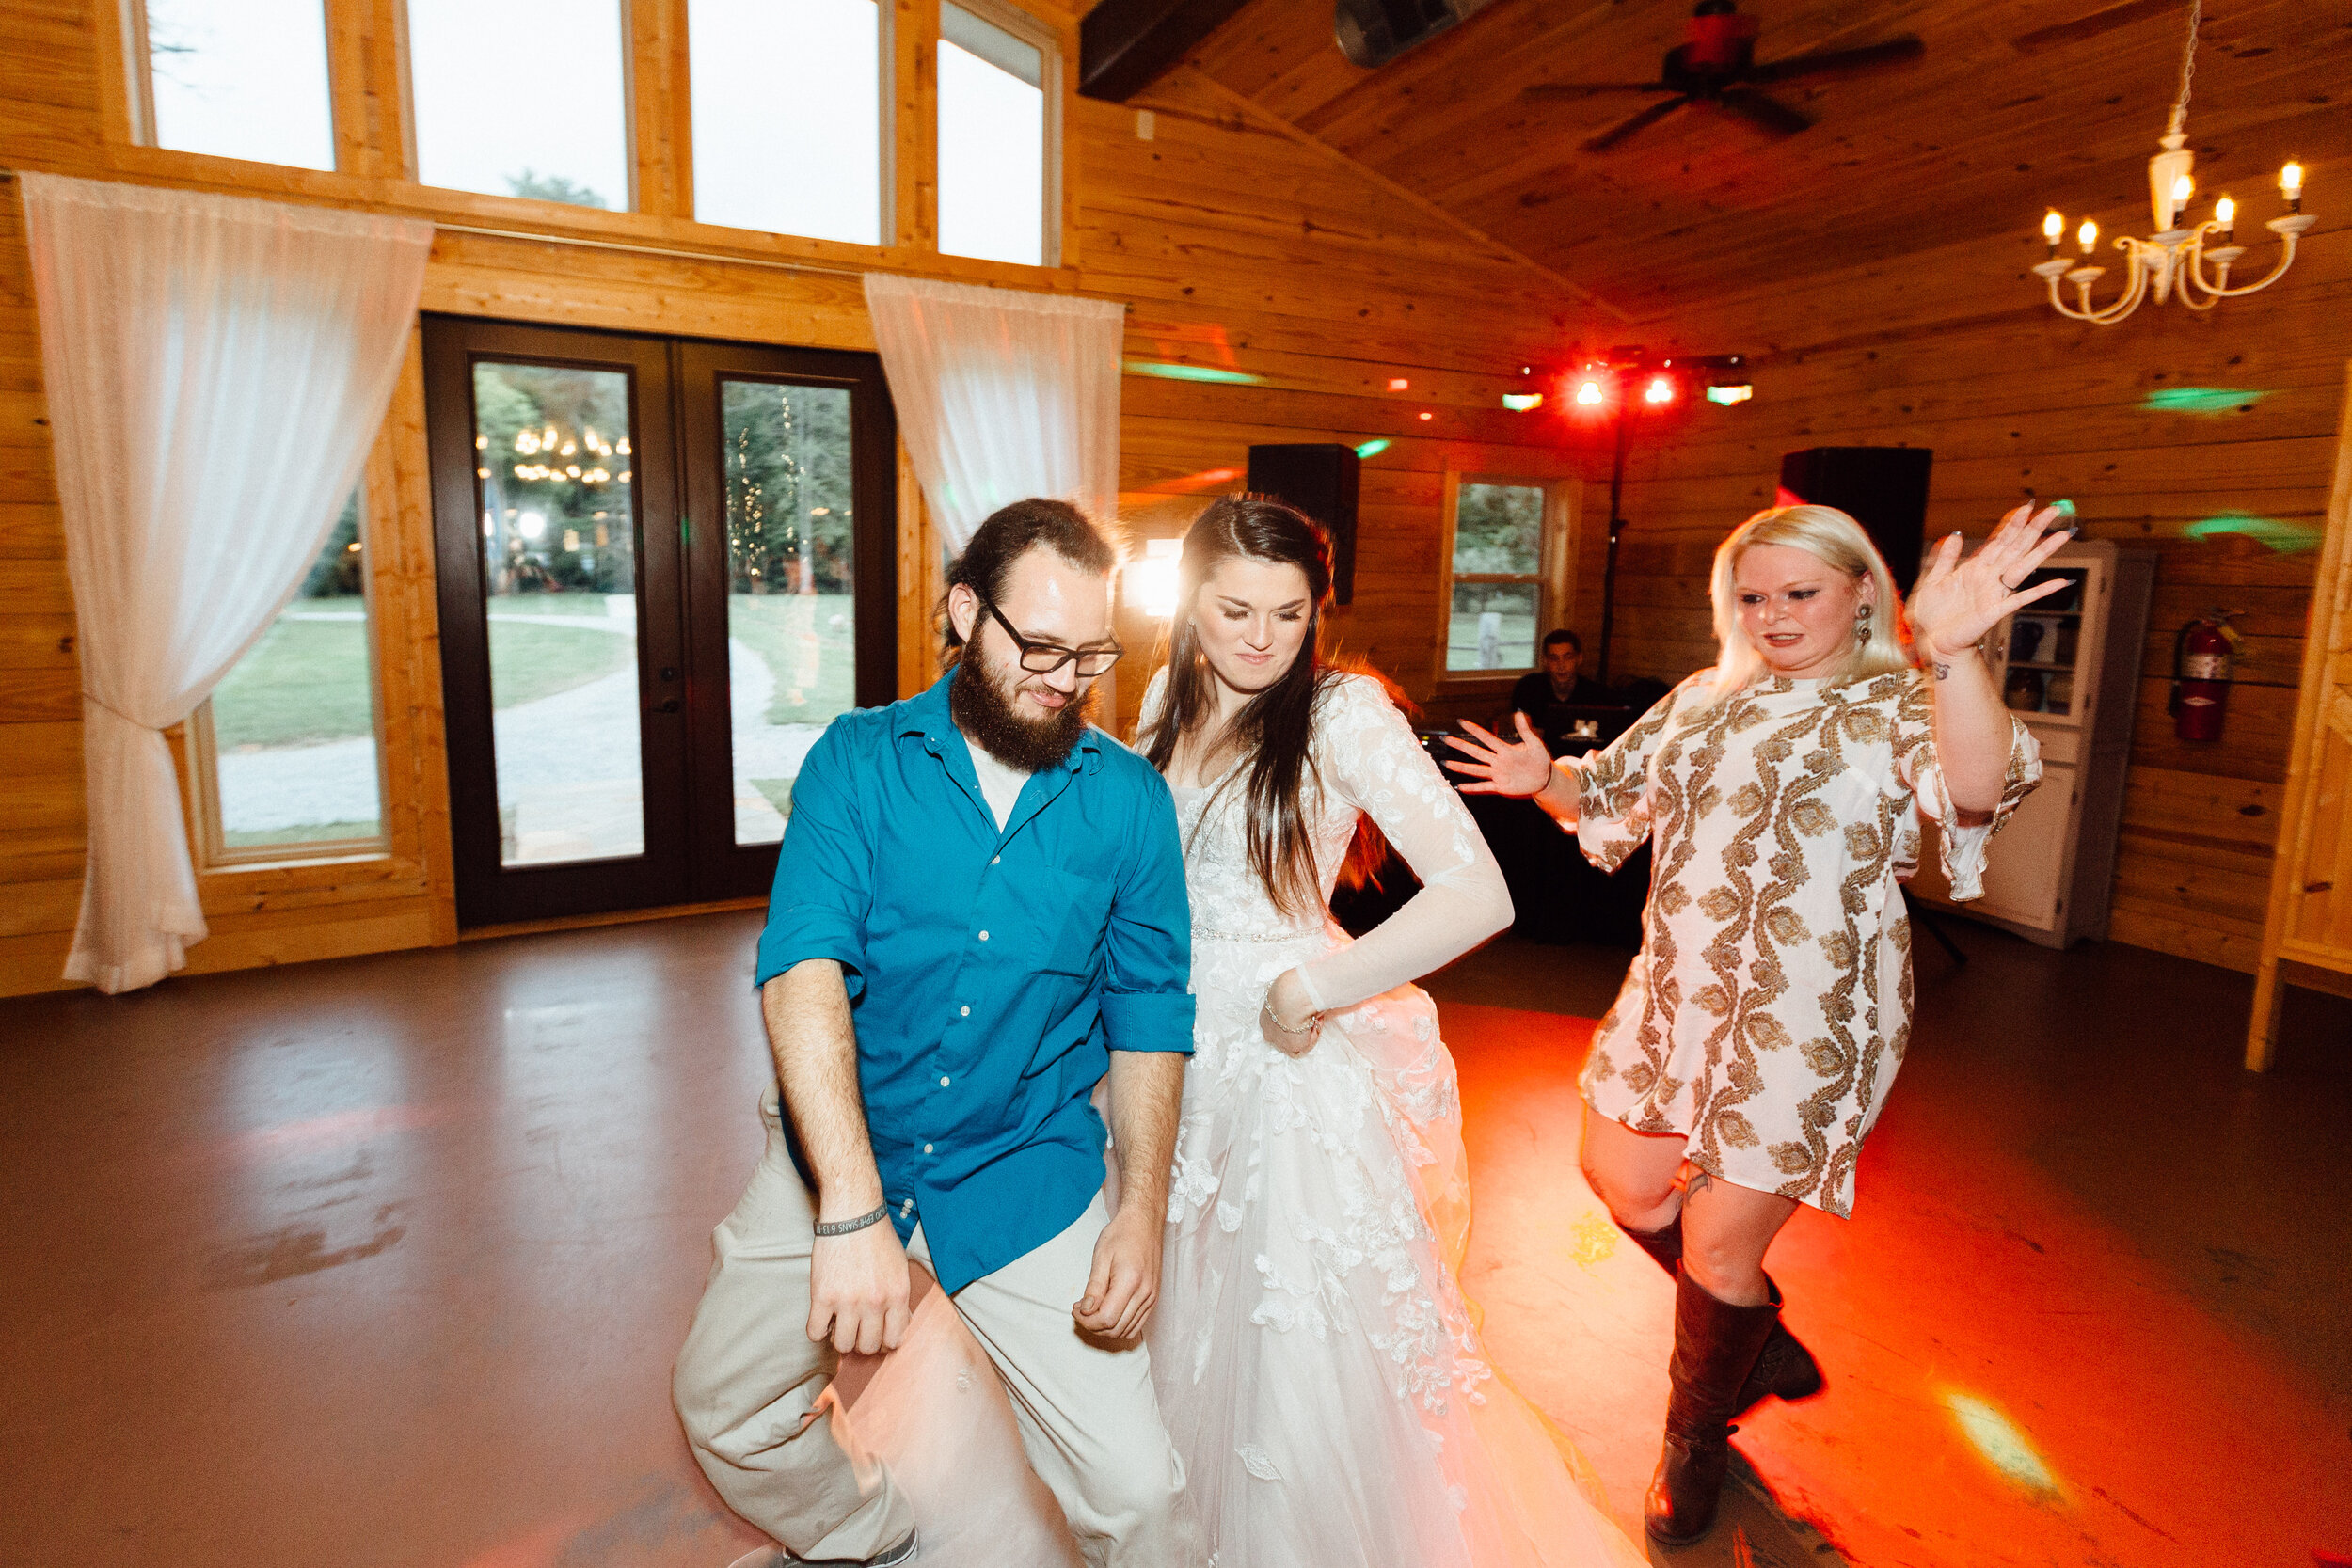 atlanta_wedding_photographers_georgia_same_sex_rustic_barn_farm_lesbian_weddings_inclusive_3222.jpg